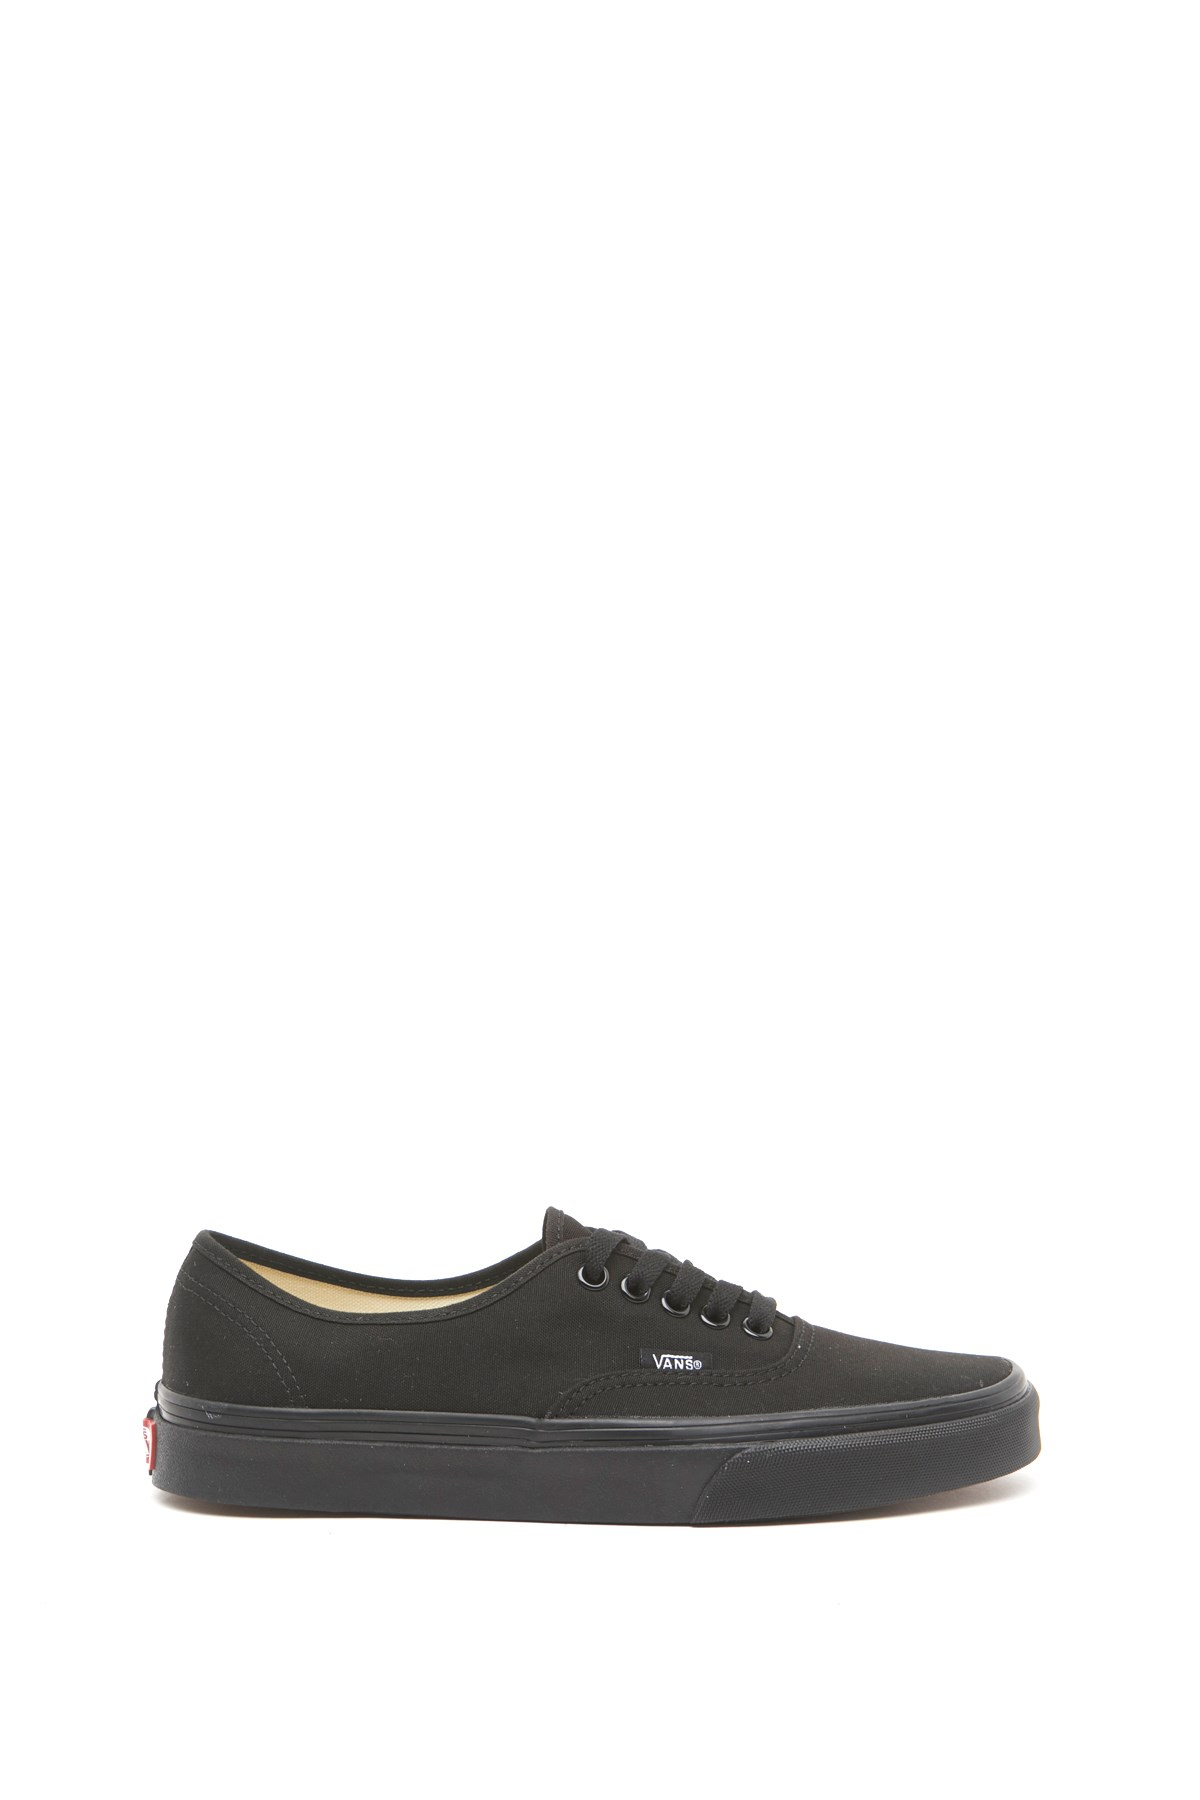 12b675ae973 vans  authentic  sneakers available on julian-fashion.com - 47013